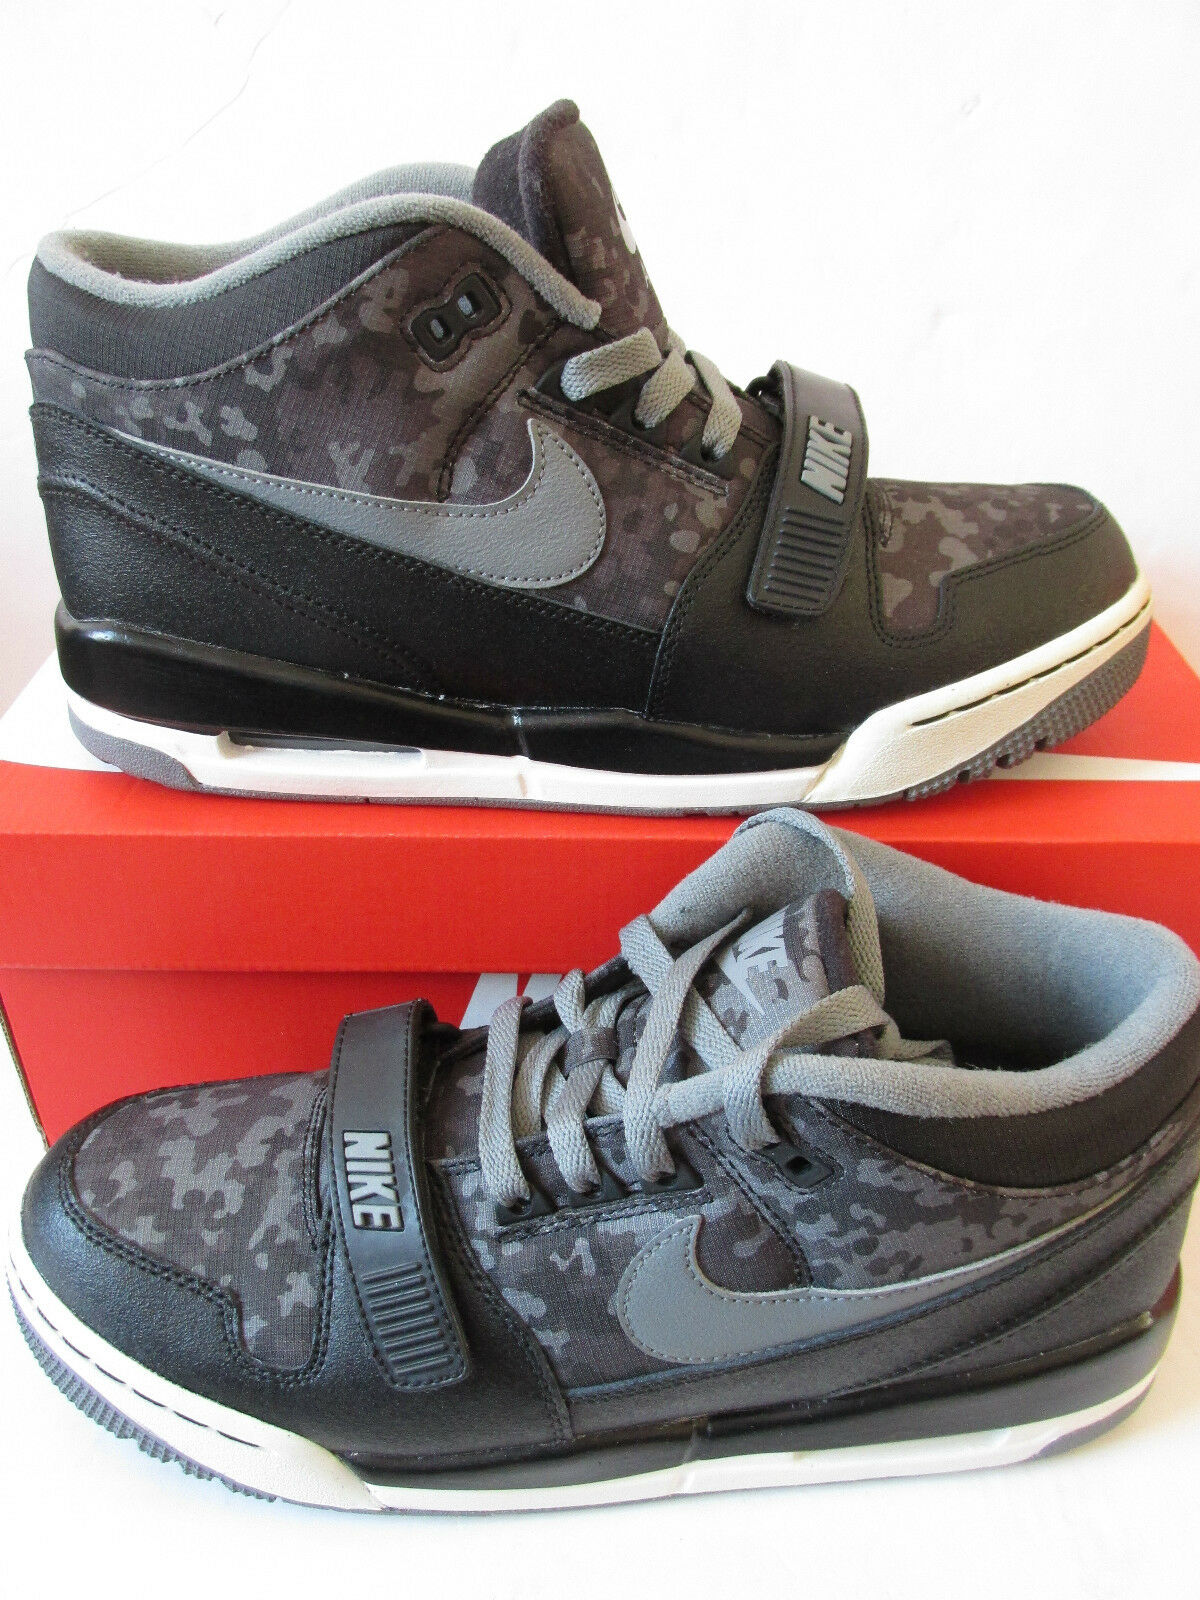 Comfortable and good-looking nike air alphalution PRM mens hi top trainers 708478 001 sneakers shoes